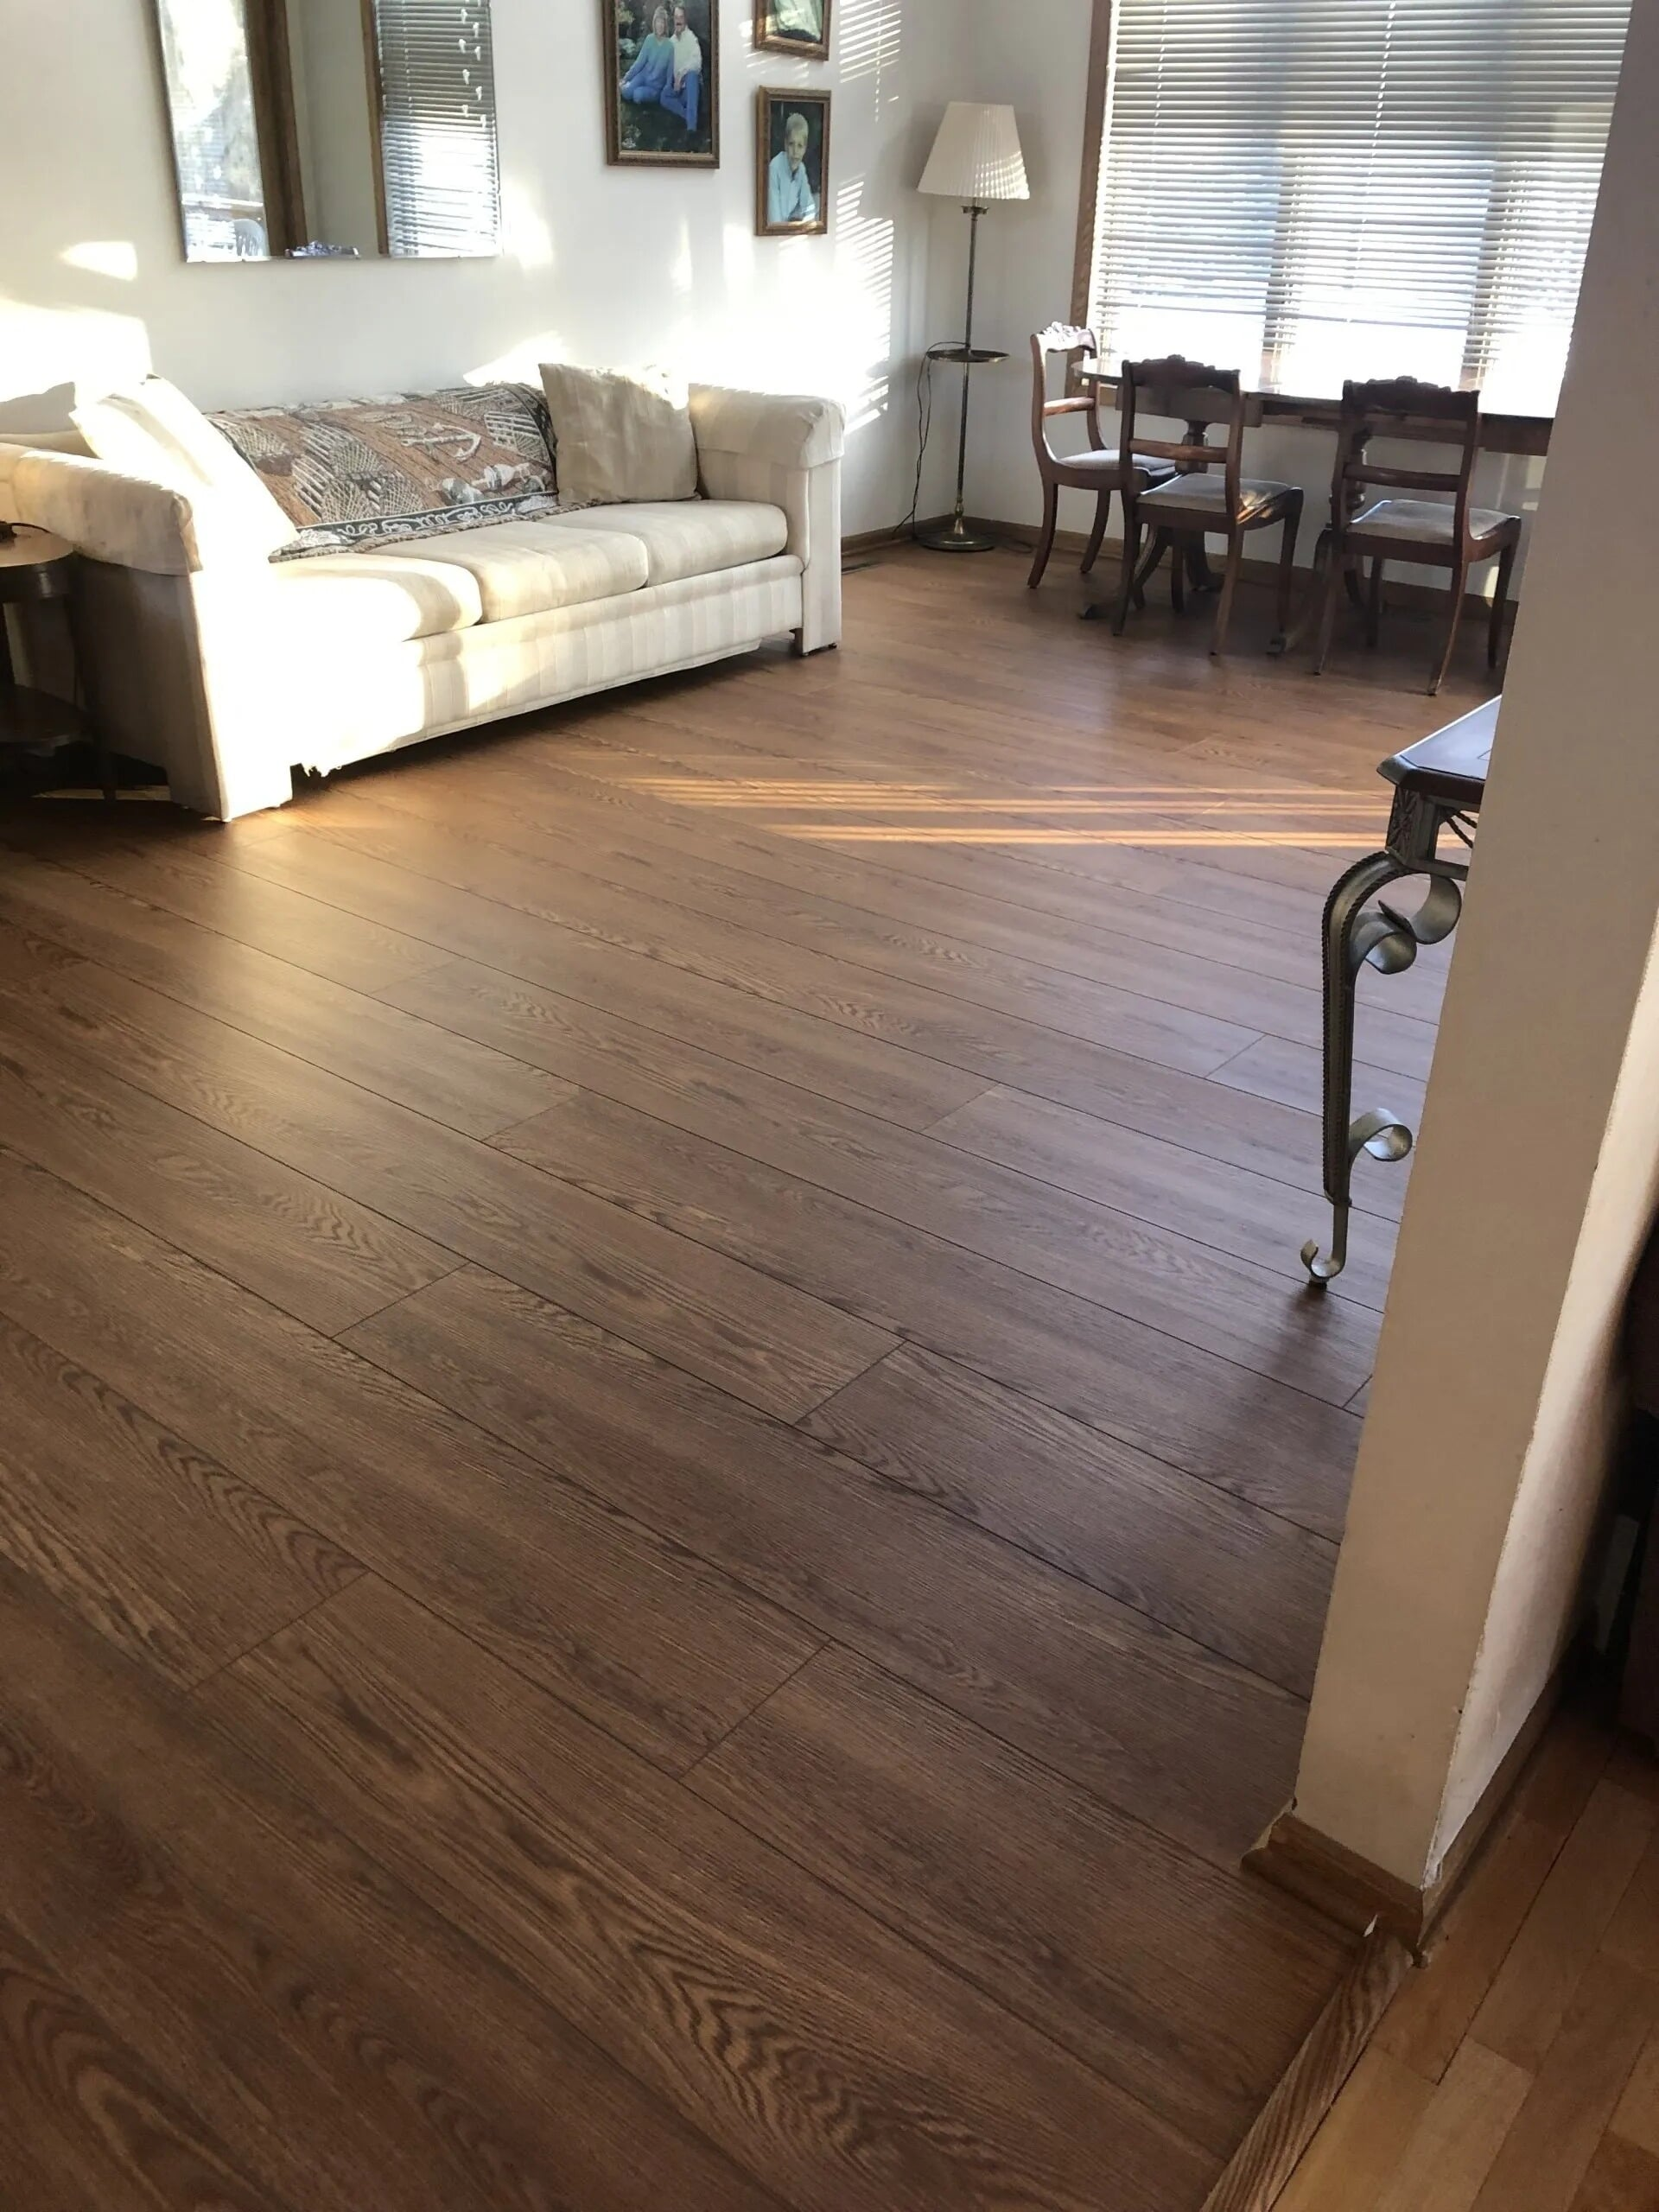 Classic hardwood flooring in Apple Valley, MN from Infinite Floors and More